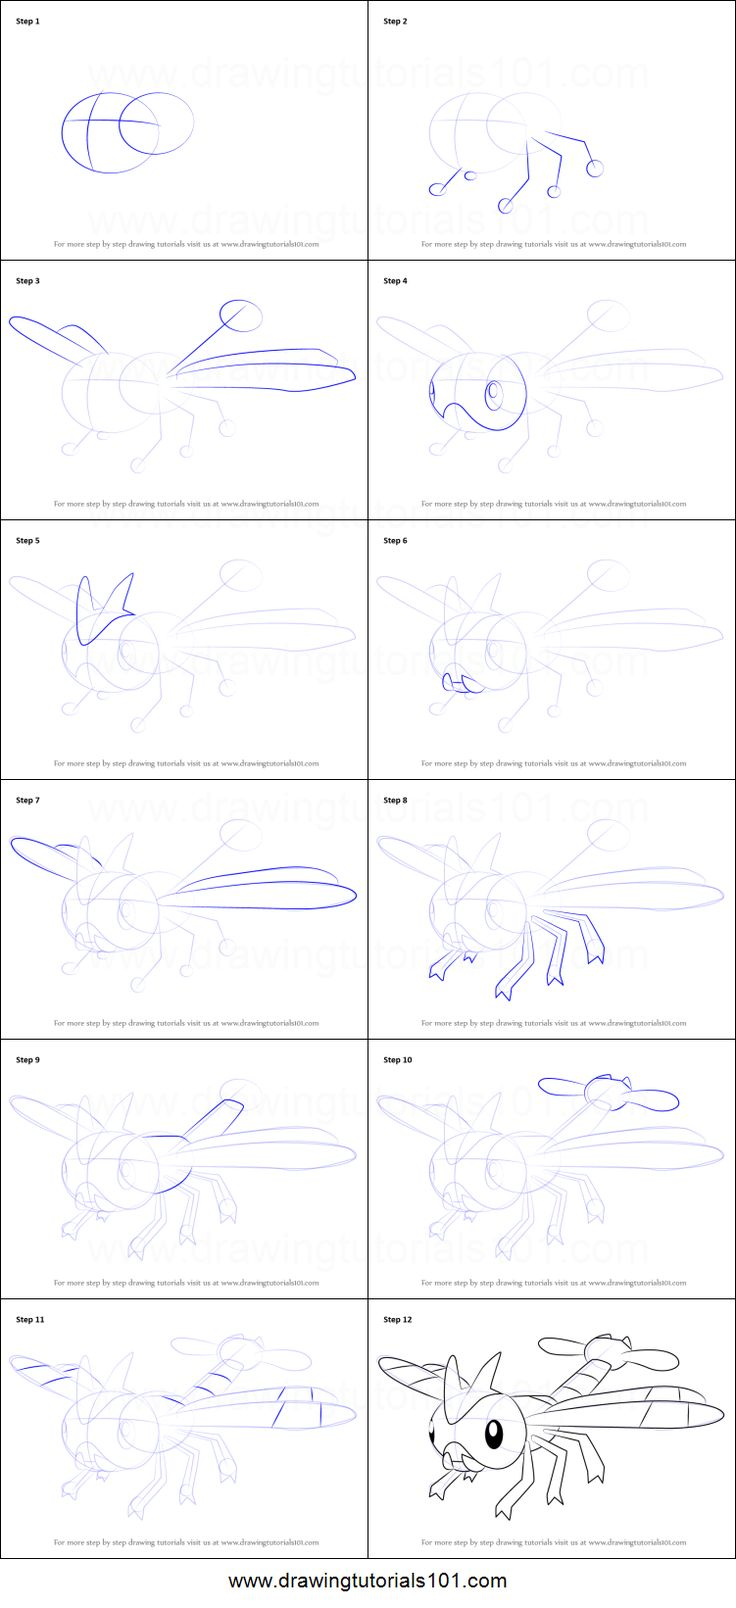 How to Draw Yanma from Pokemon printable step by step drawing sheet : DrawingTutorials101.com